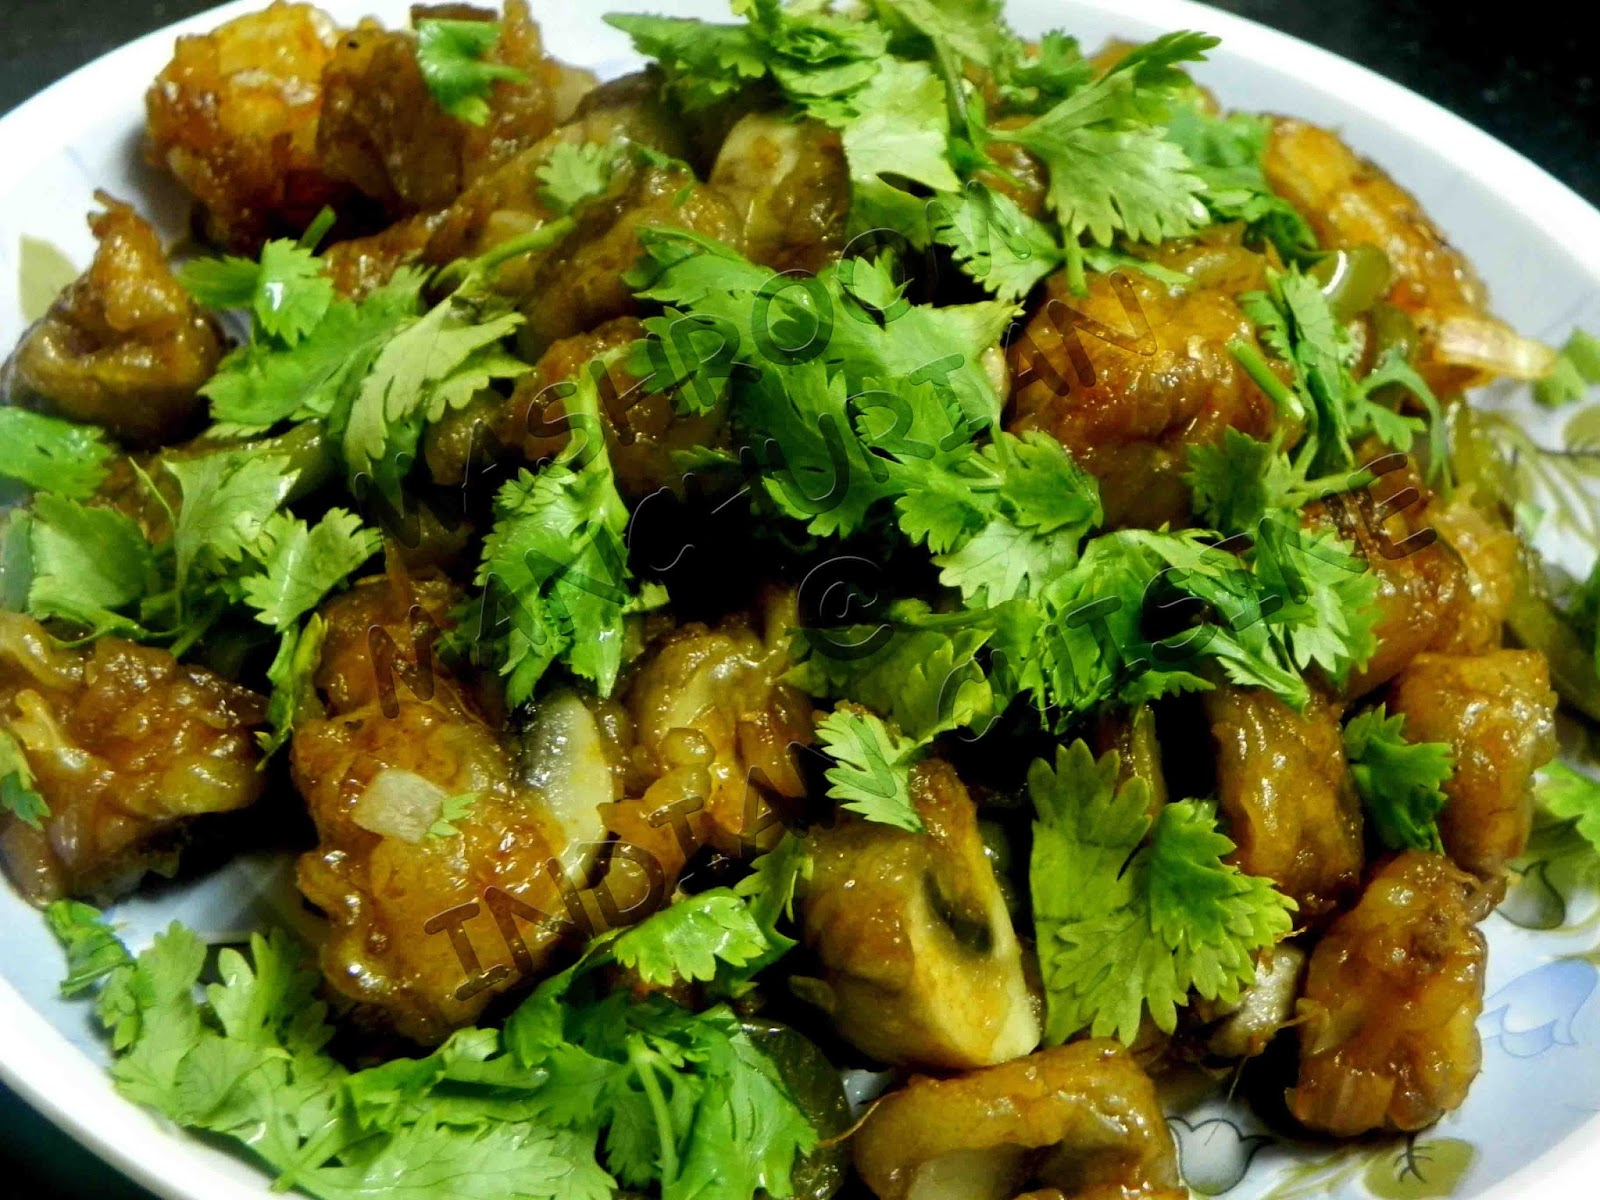 Chinese recipes restaurant style mushroom manchurian delicious as every one knows mushroom is one among very nutritious food item this delicacy of china is the tastiest mouth watering recipe one can make with forumfinder Gallery